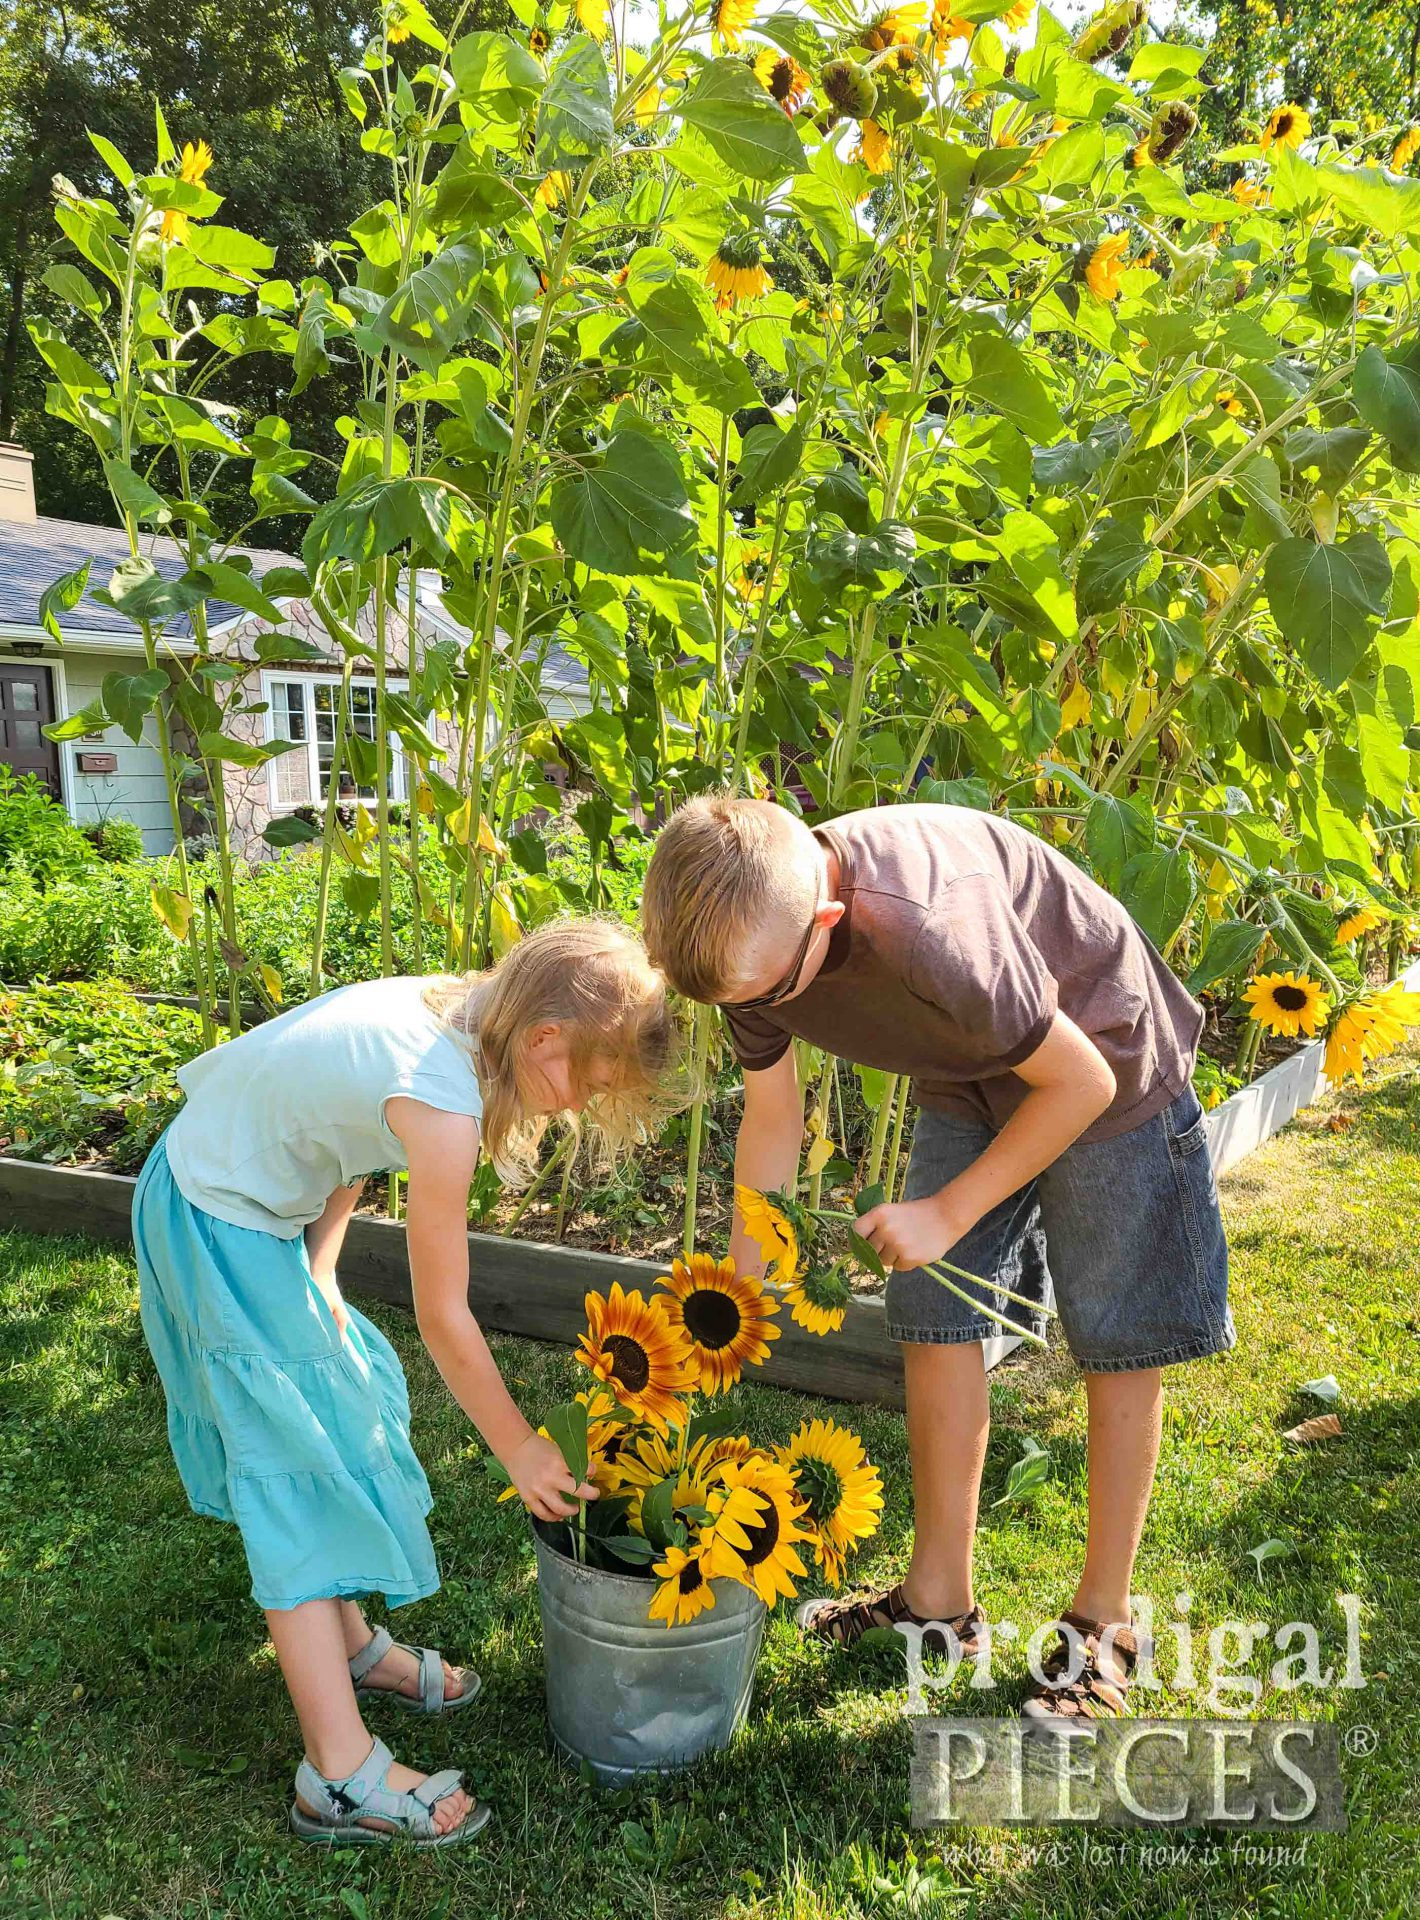 Picking Sunflowers to Share by Prodigal Pieces | prodigalpieces.com #prodigalpieces #sunflowers #gardening